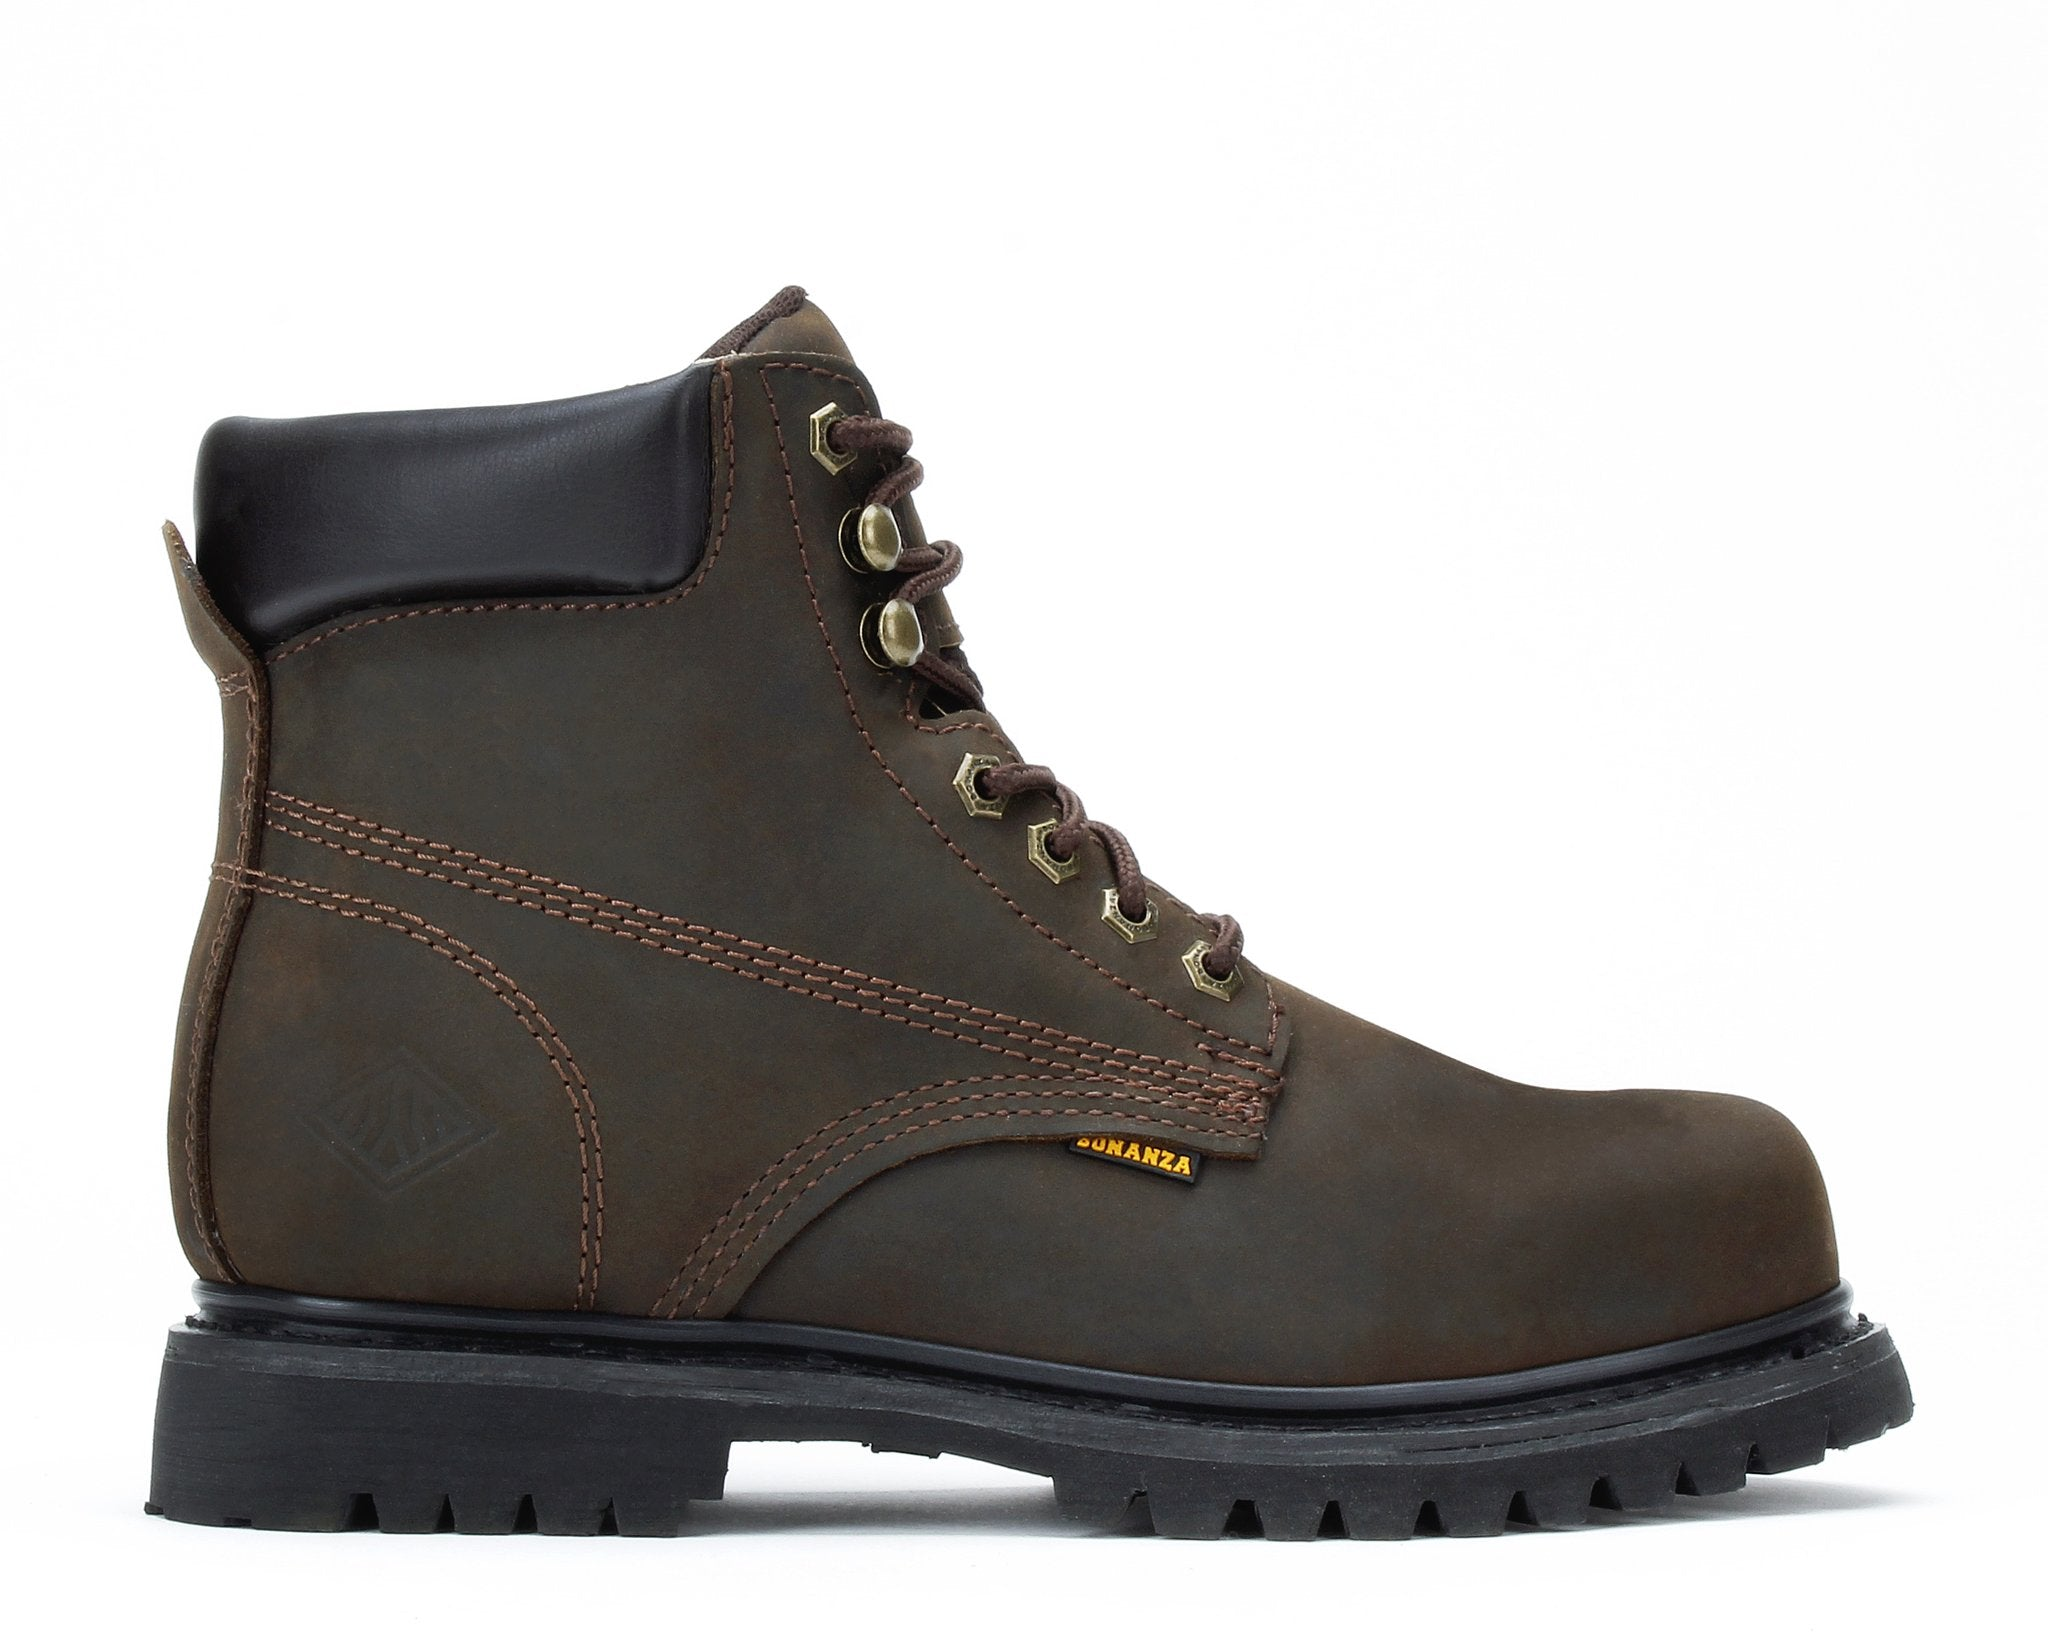 WOODLAND | Round Toe 6-Inch Lug Sole Boot with Steel Toe